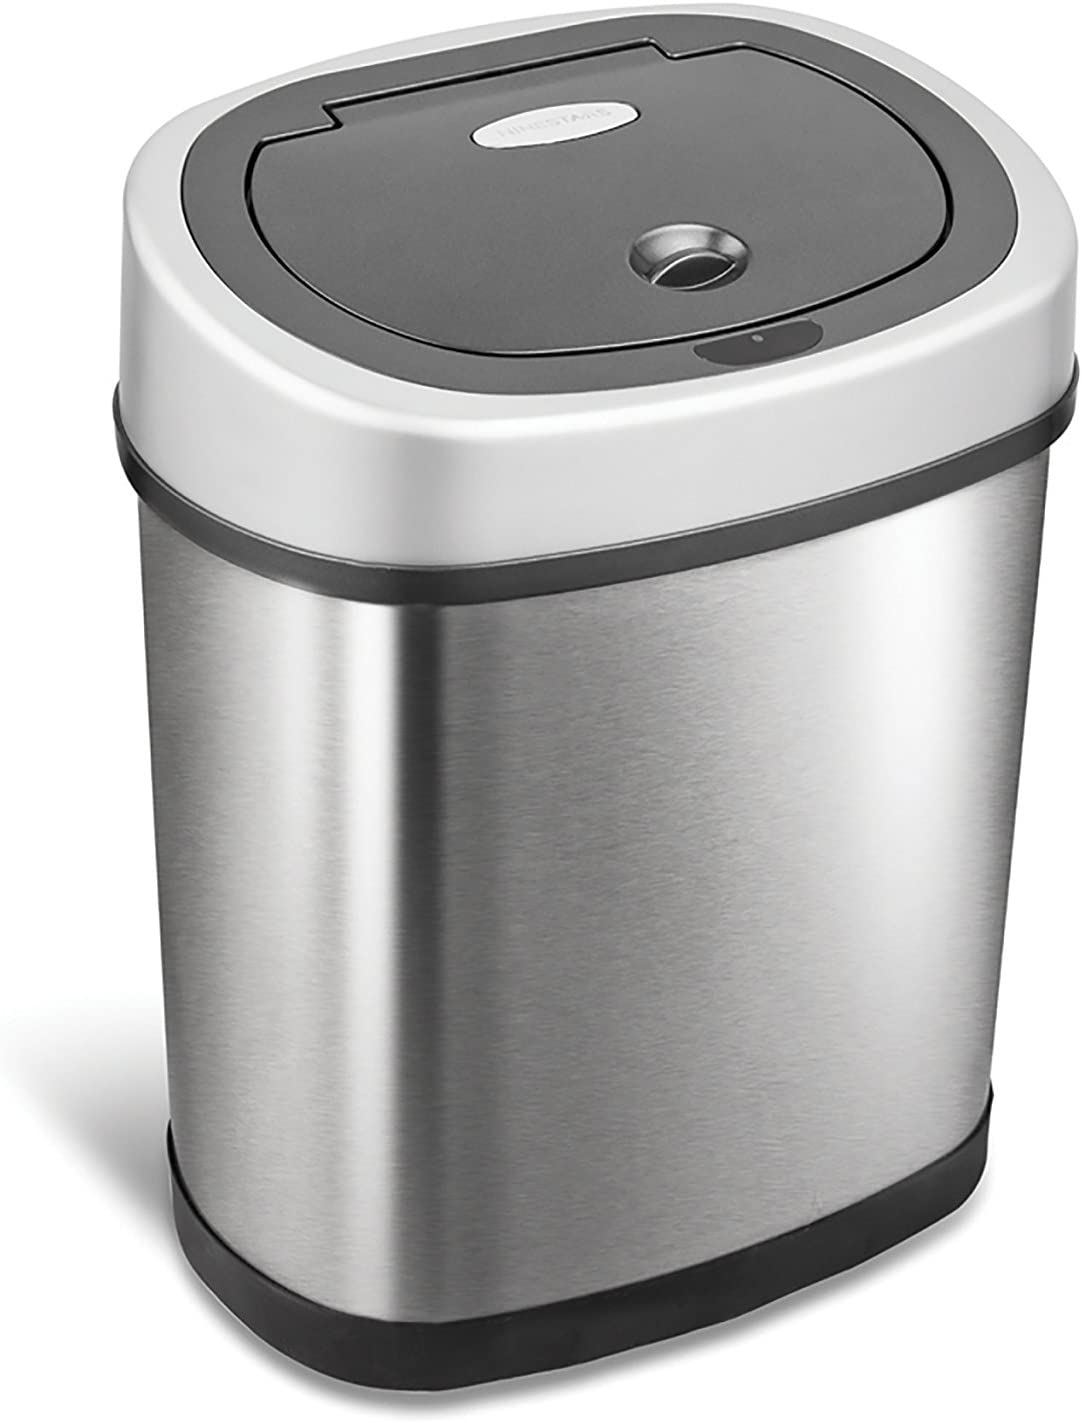 Ninestars Dzt 12 9 Automatic Touchless Infrared Motion Sensor Trash Can 3 Gal 12 L Stainless Steel Oval Silver Black Lid Amazon Ca Home Kitchen